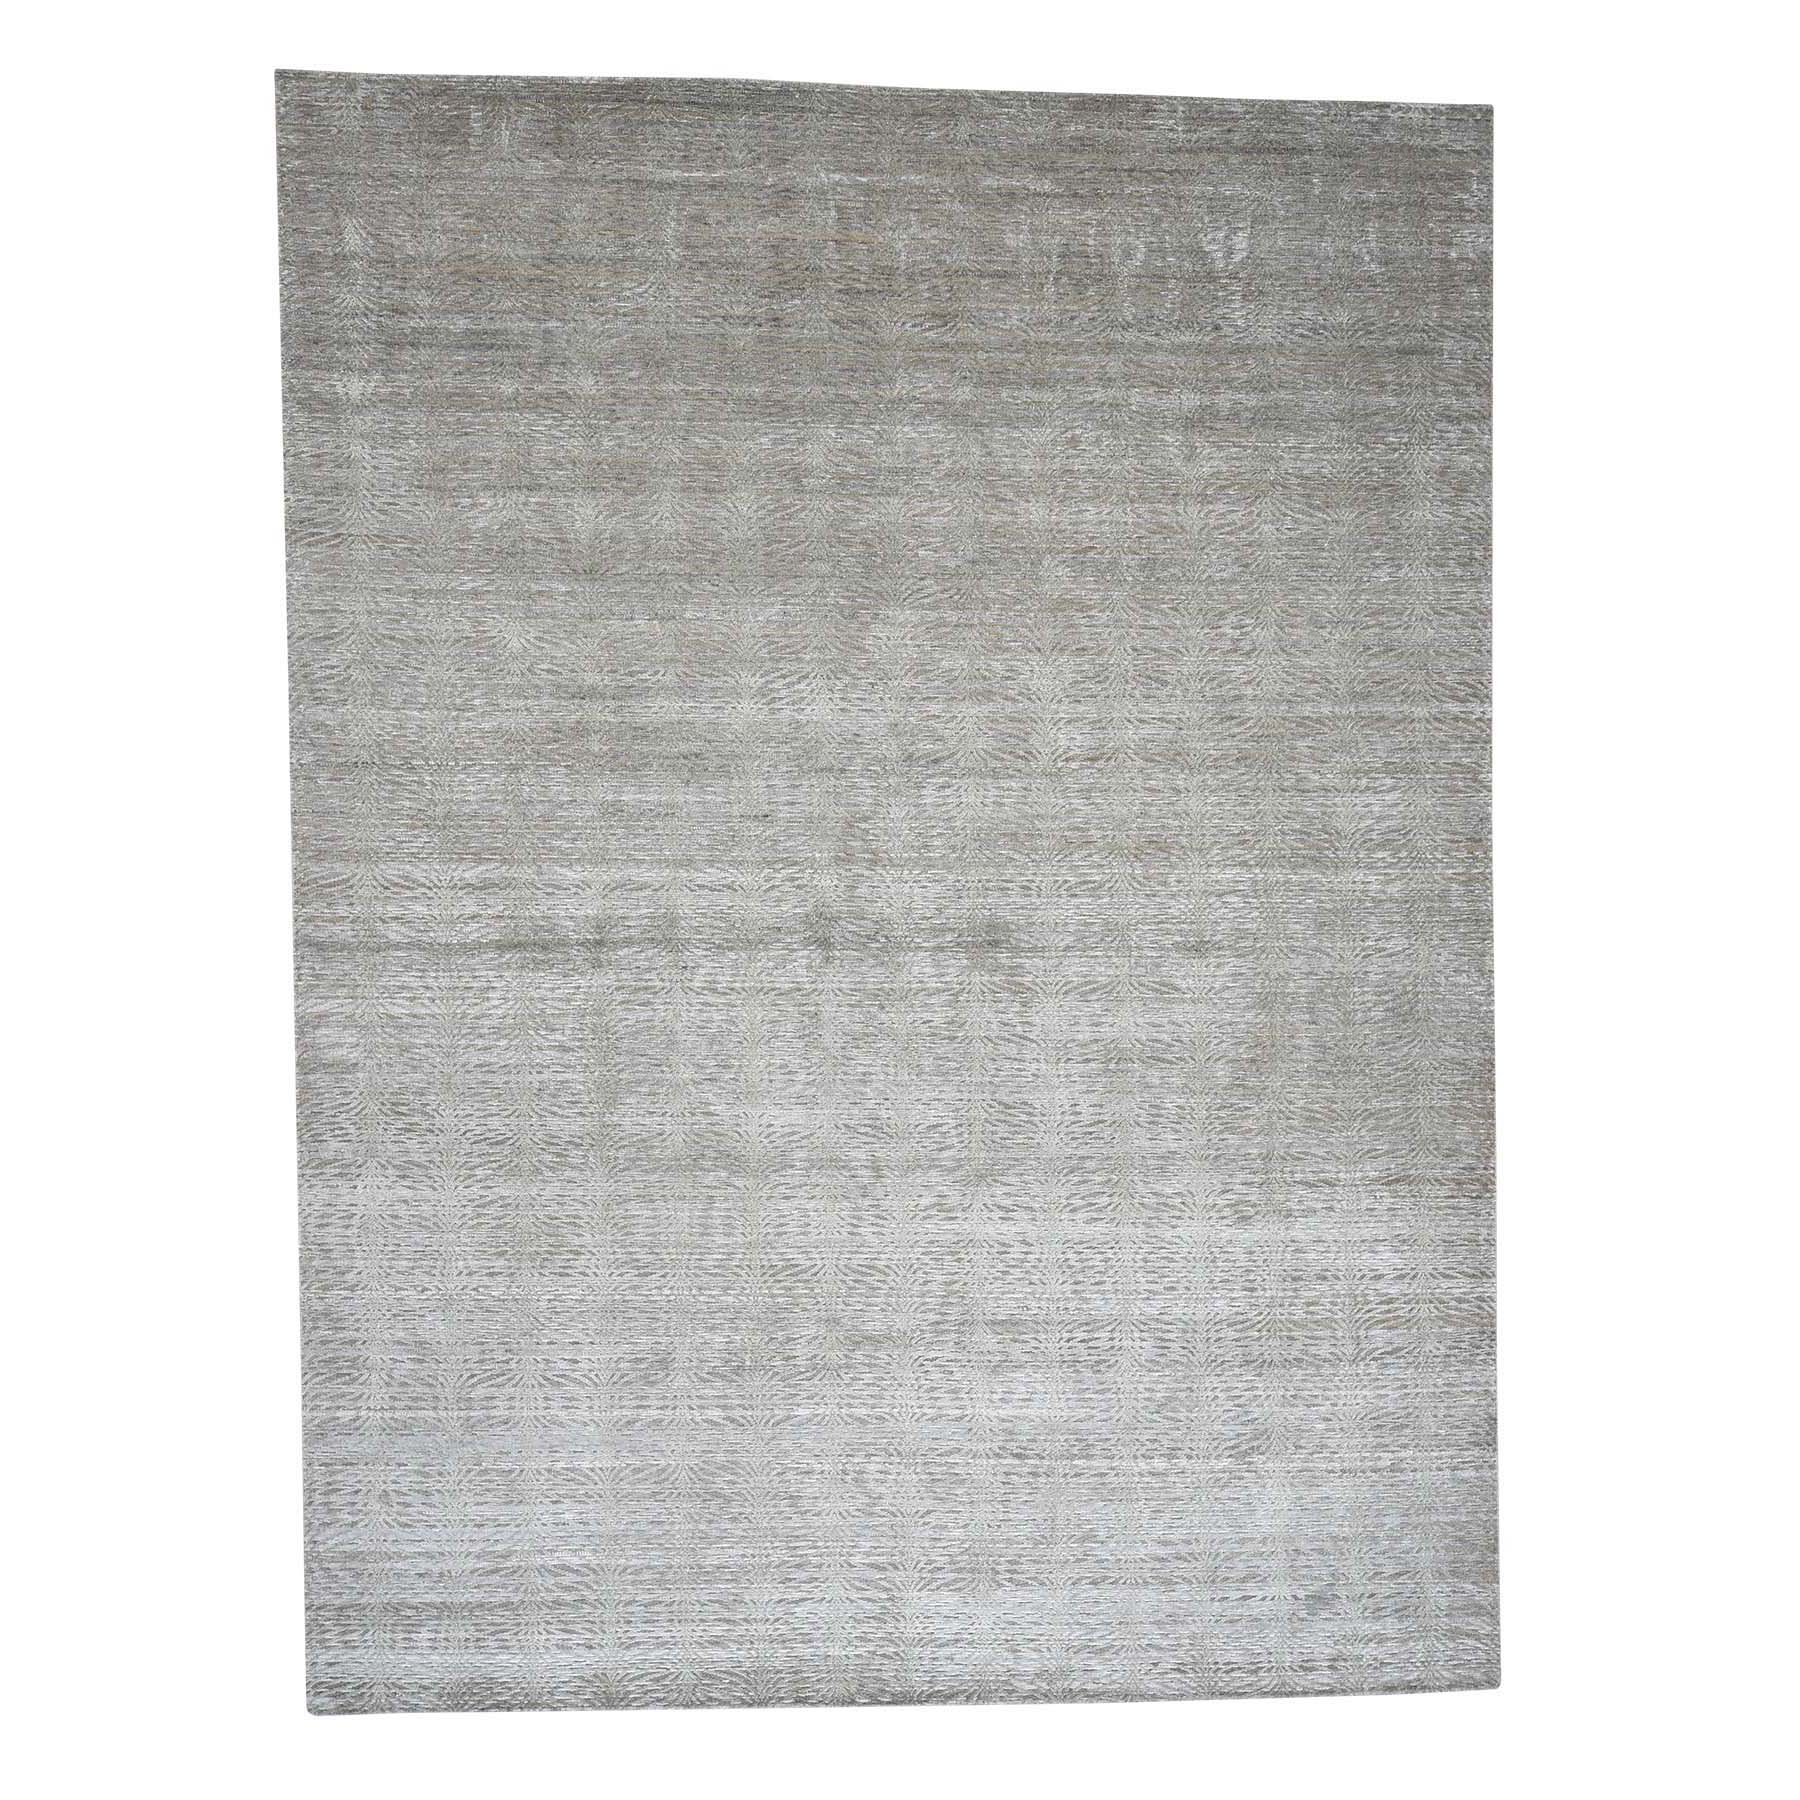 Mid Century Modern Collection Hand Knotted Teal Rug No: 0181182